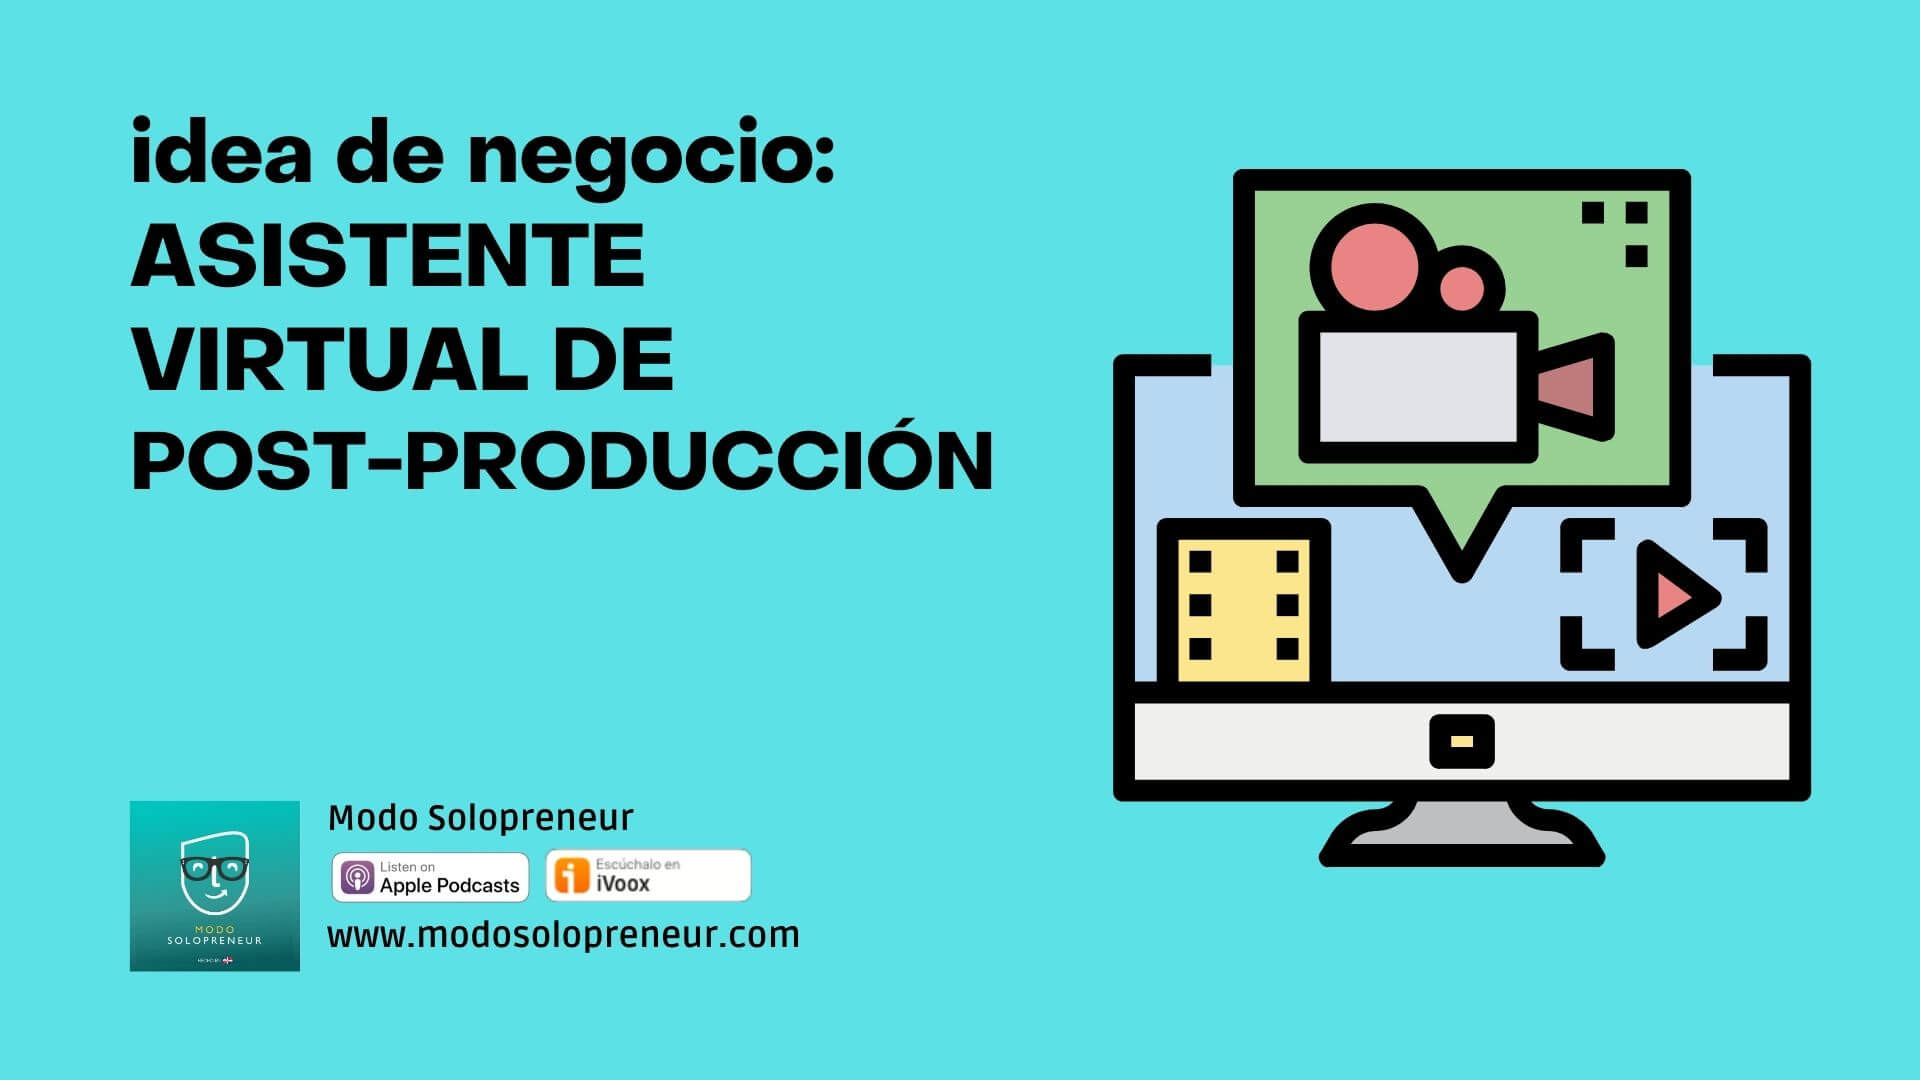 Asistente Virtual de Post-producción